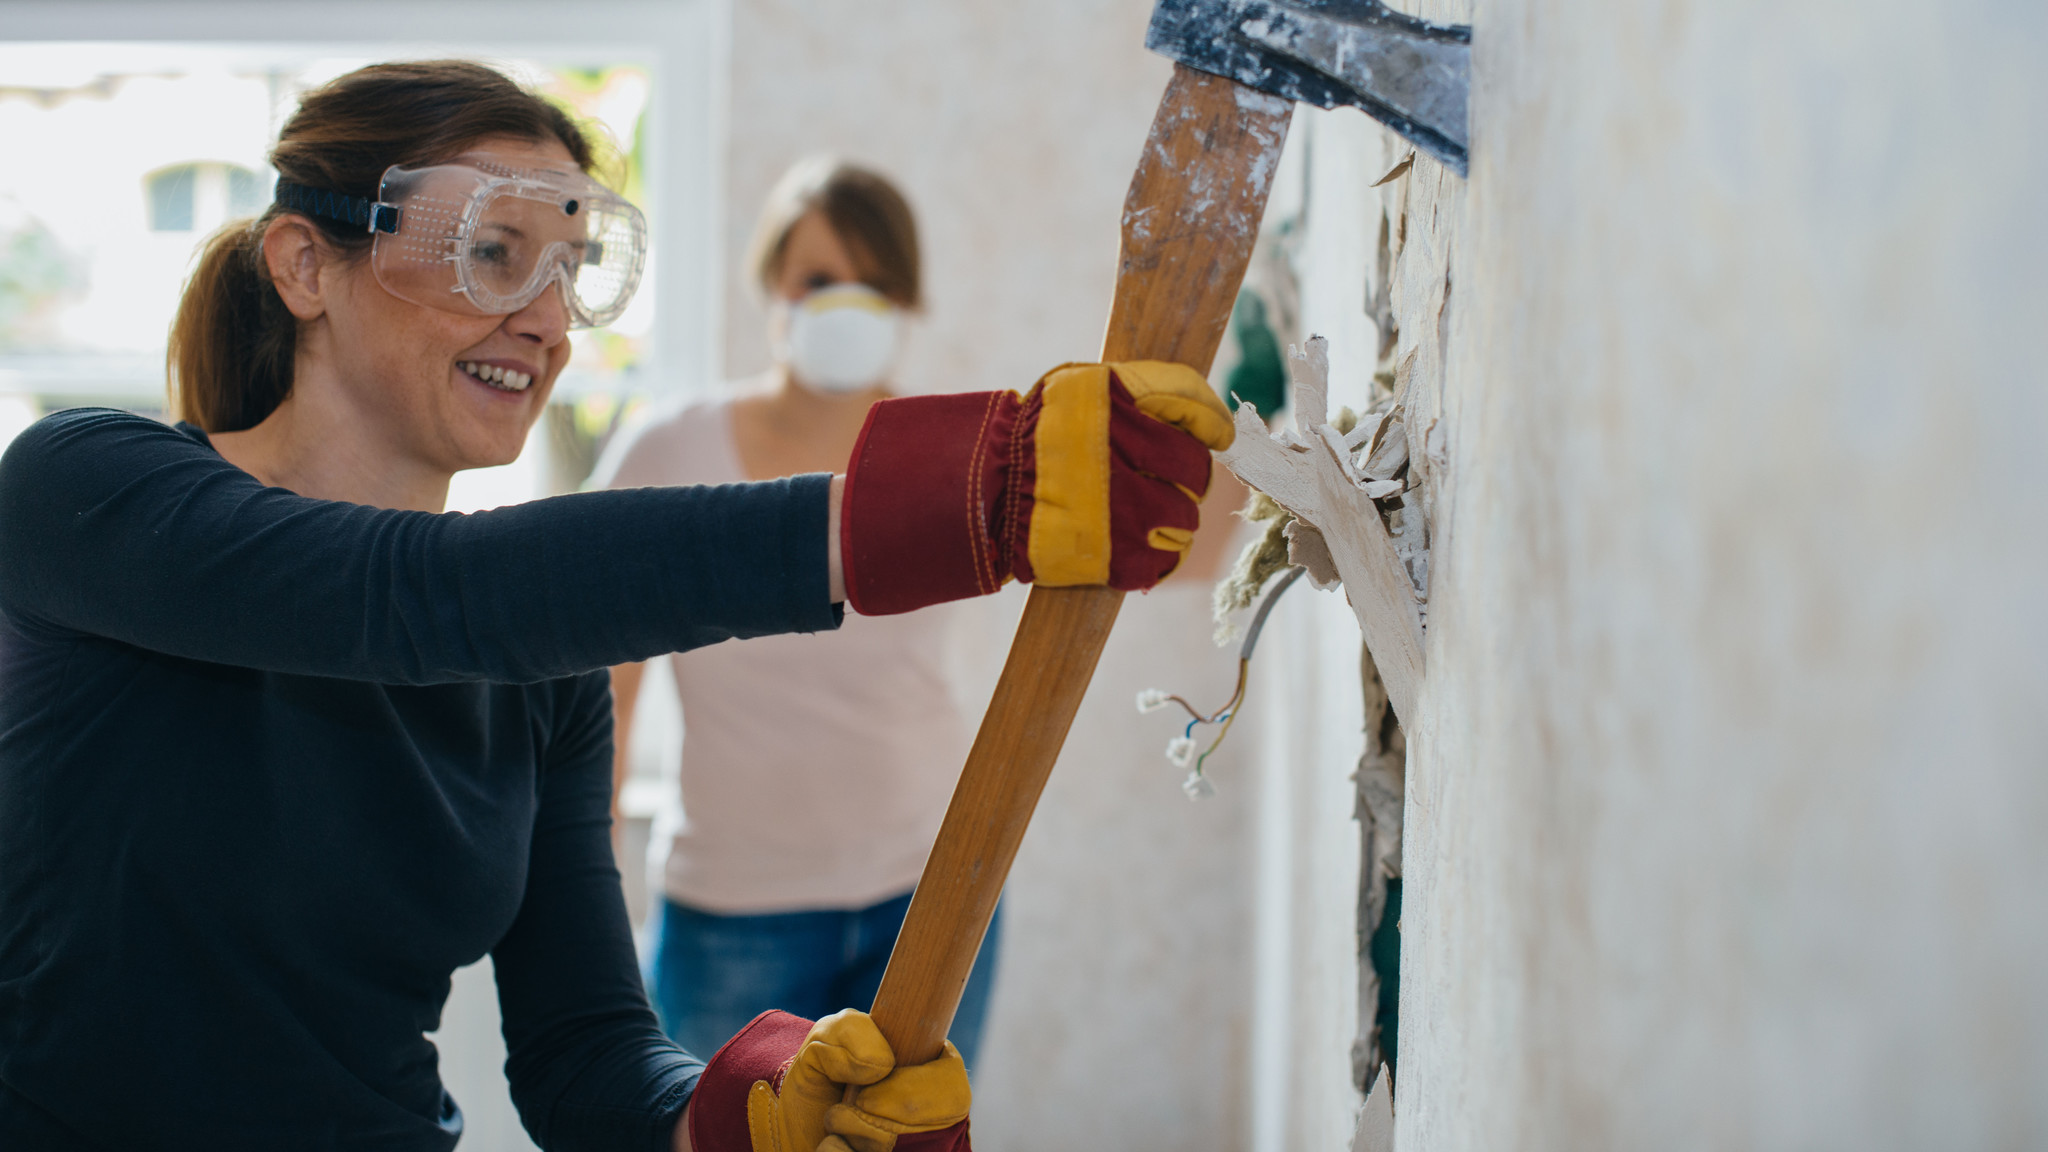 Major home renovations without a permit can lead to serious consequences